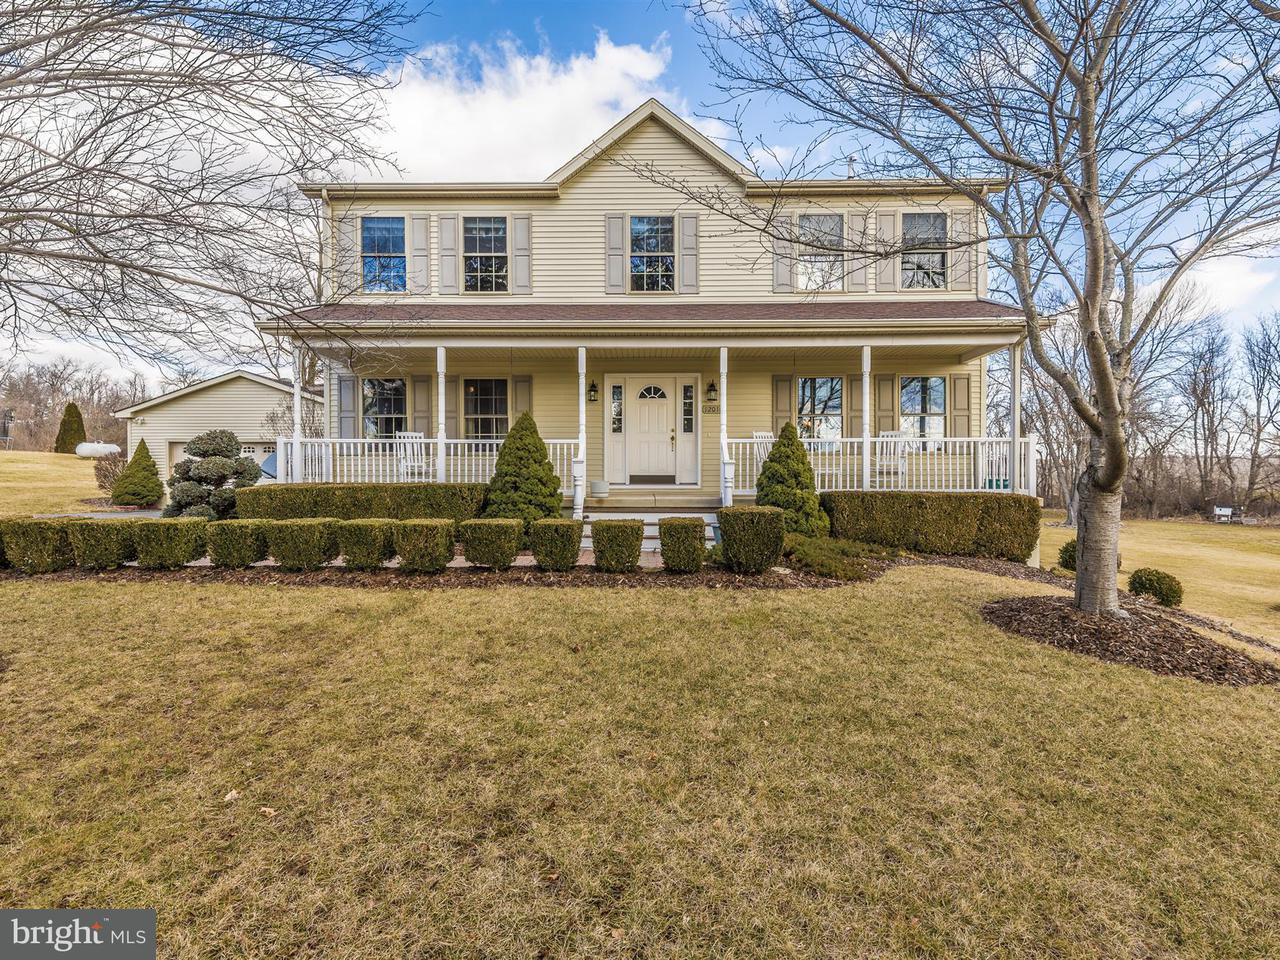 Single Family Home for Sale at 12016 North Street 12016 North Street Libertytown, Maryland 21762 United States